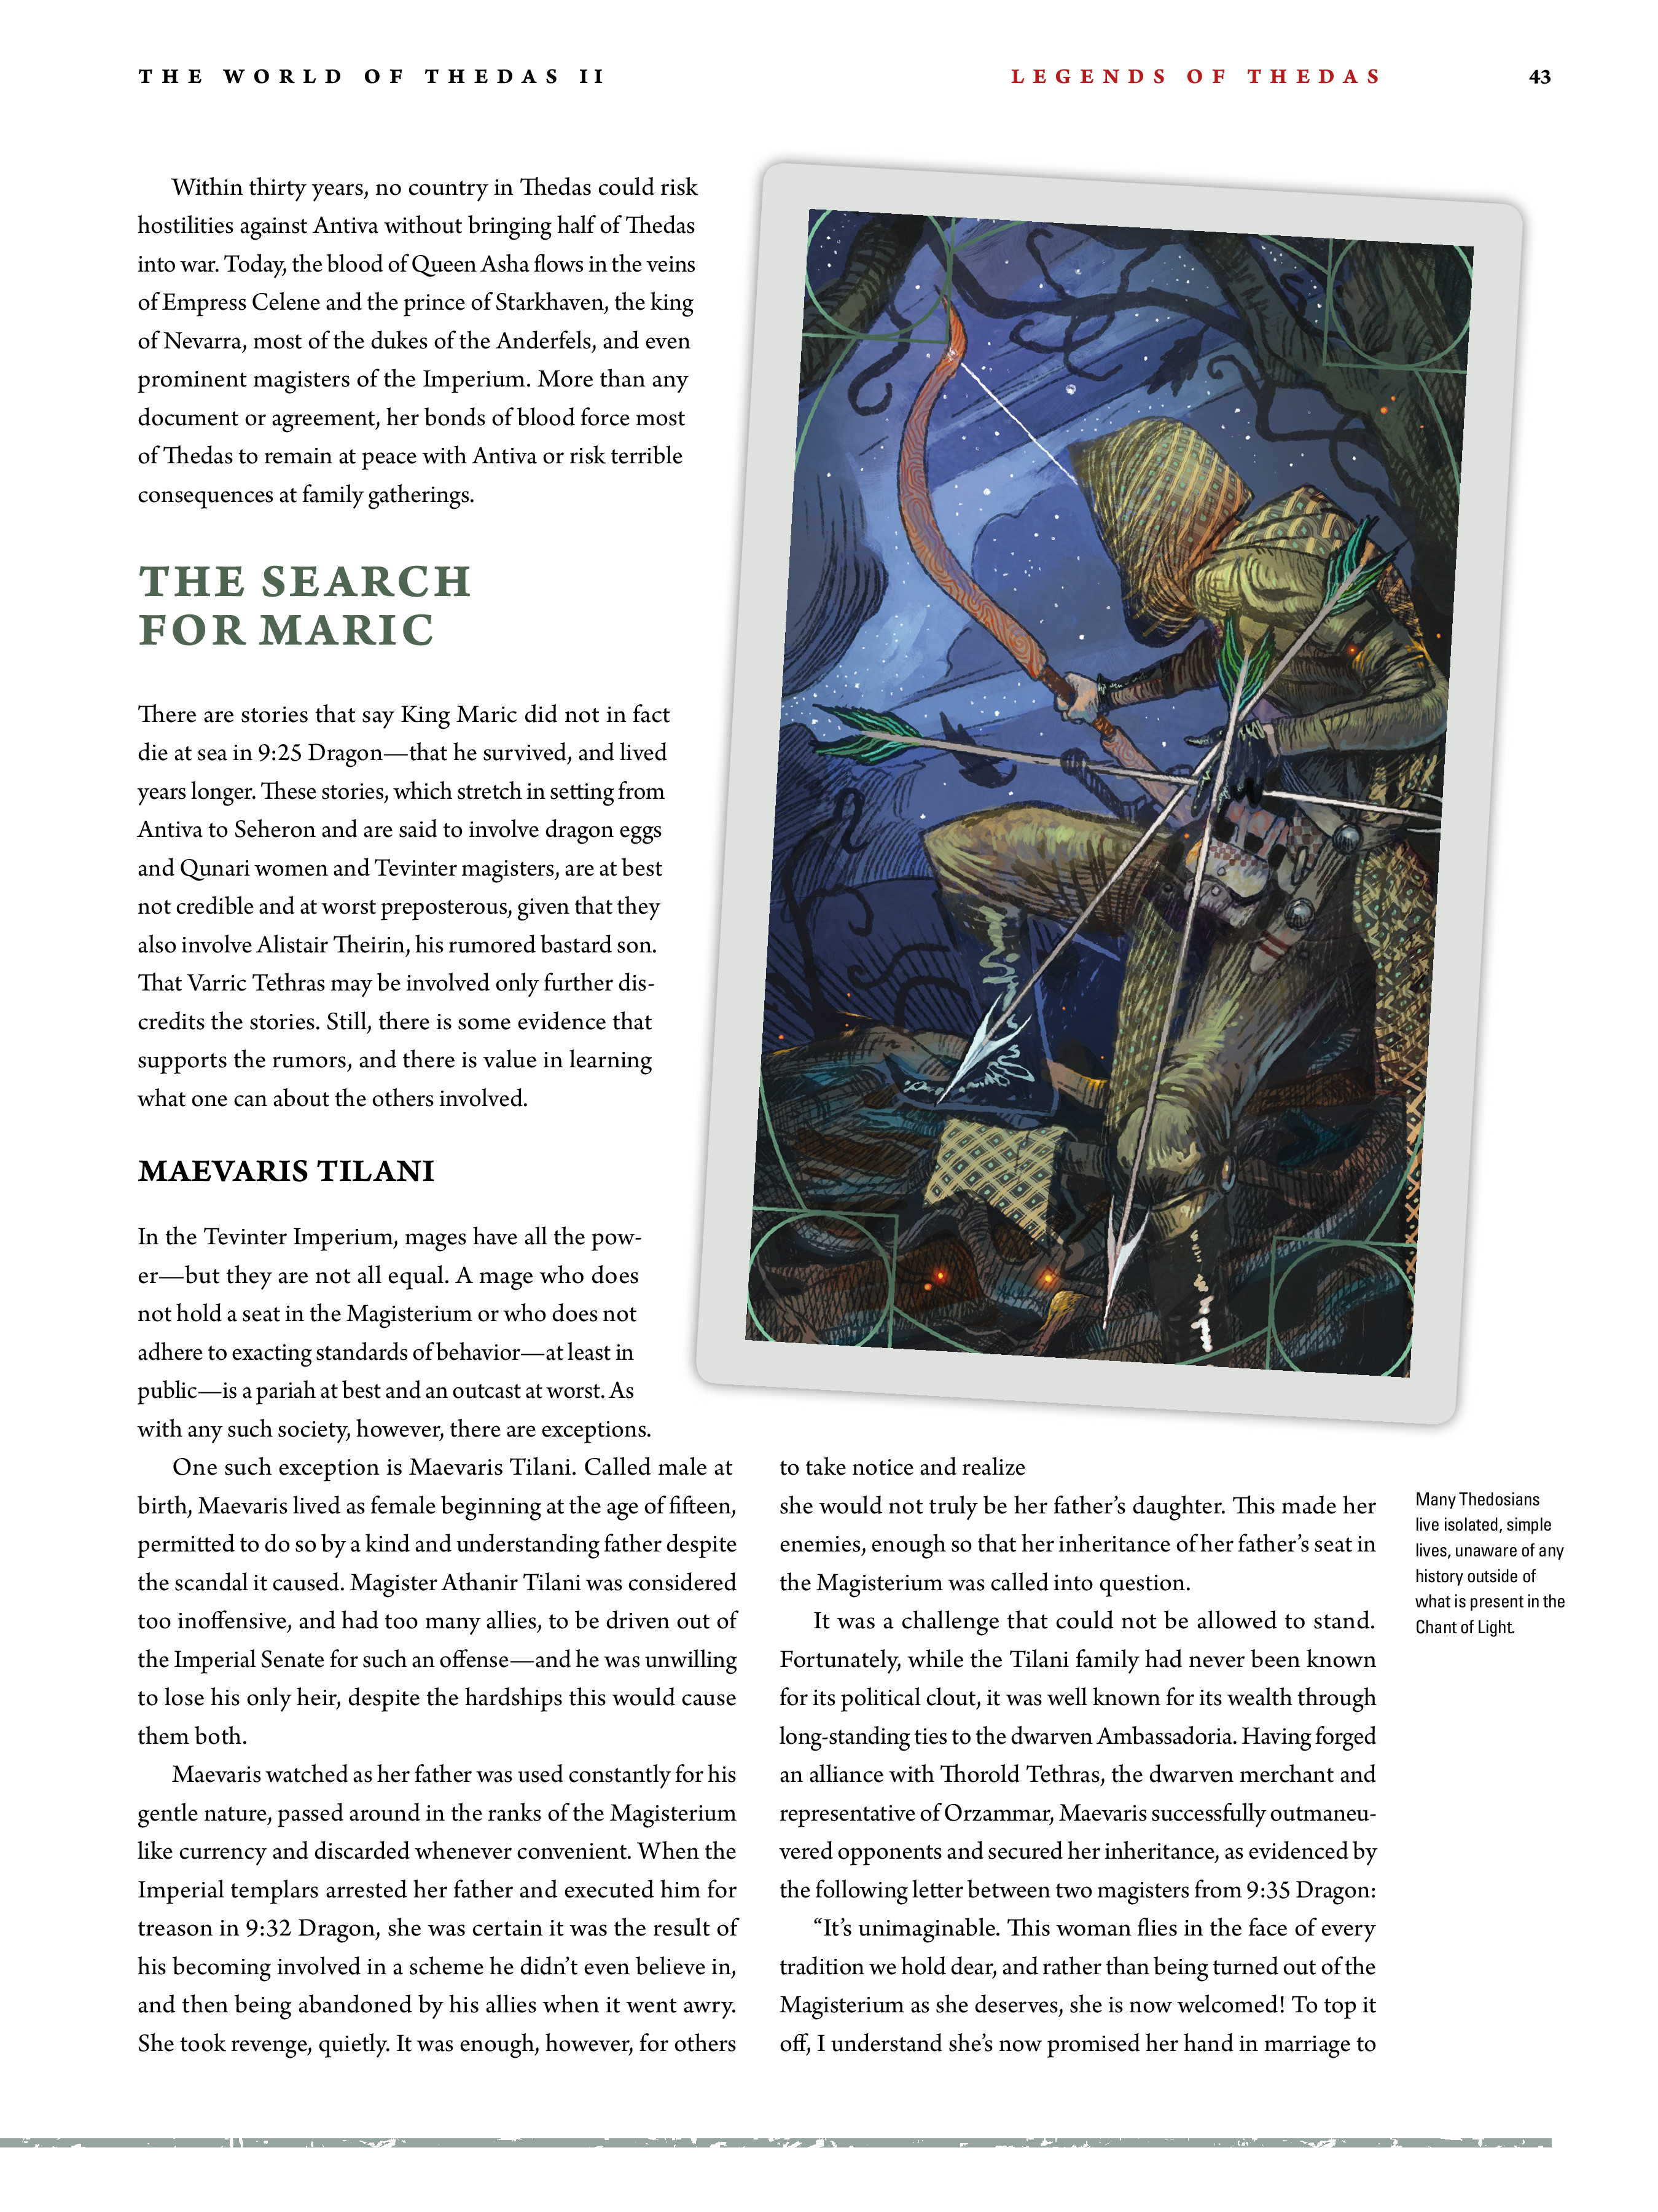 Read online Dragon Age: The World of Thedas comic -  Issue # TPB 2 - 40